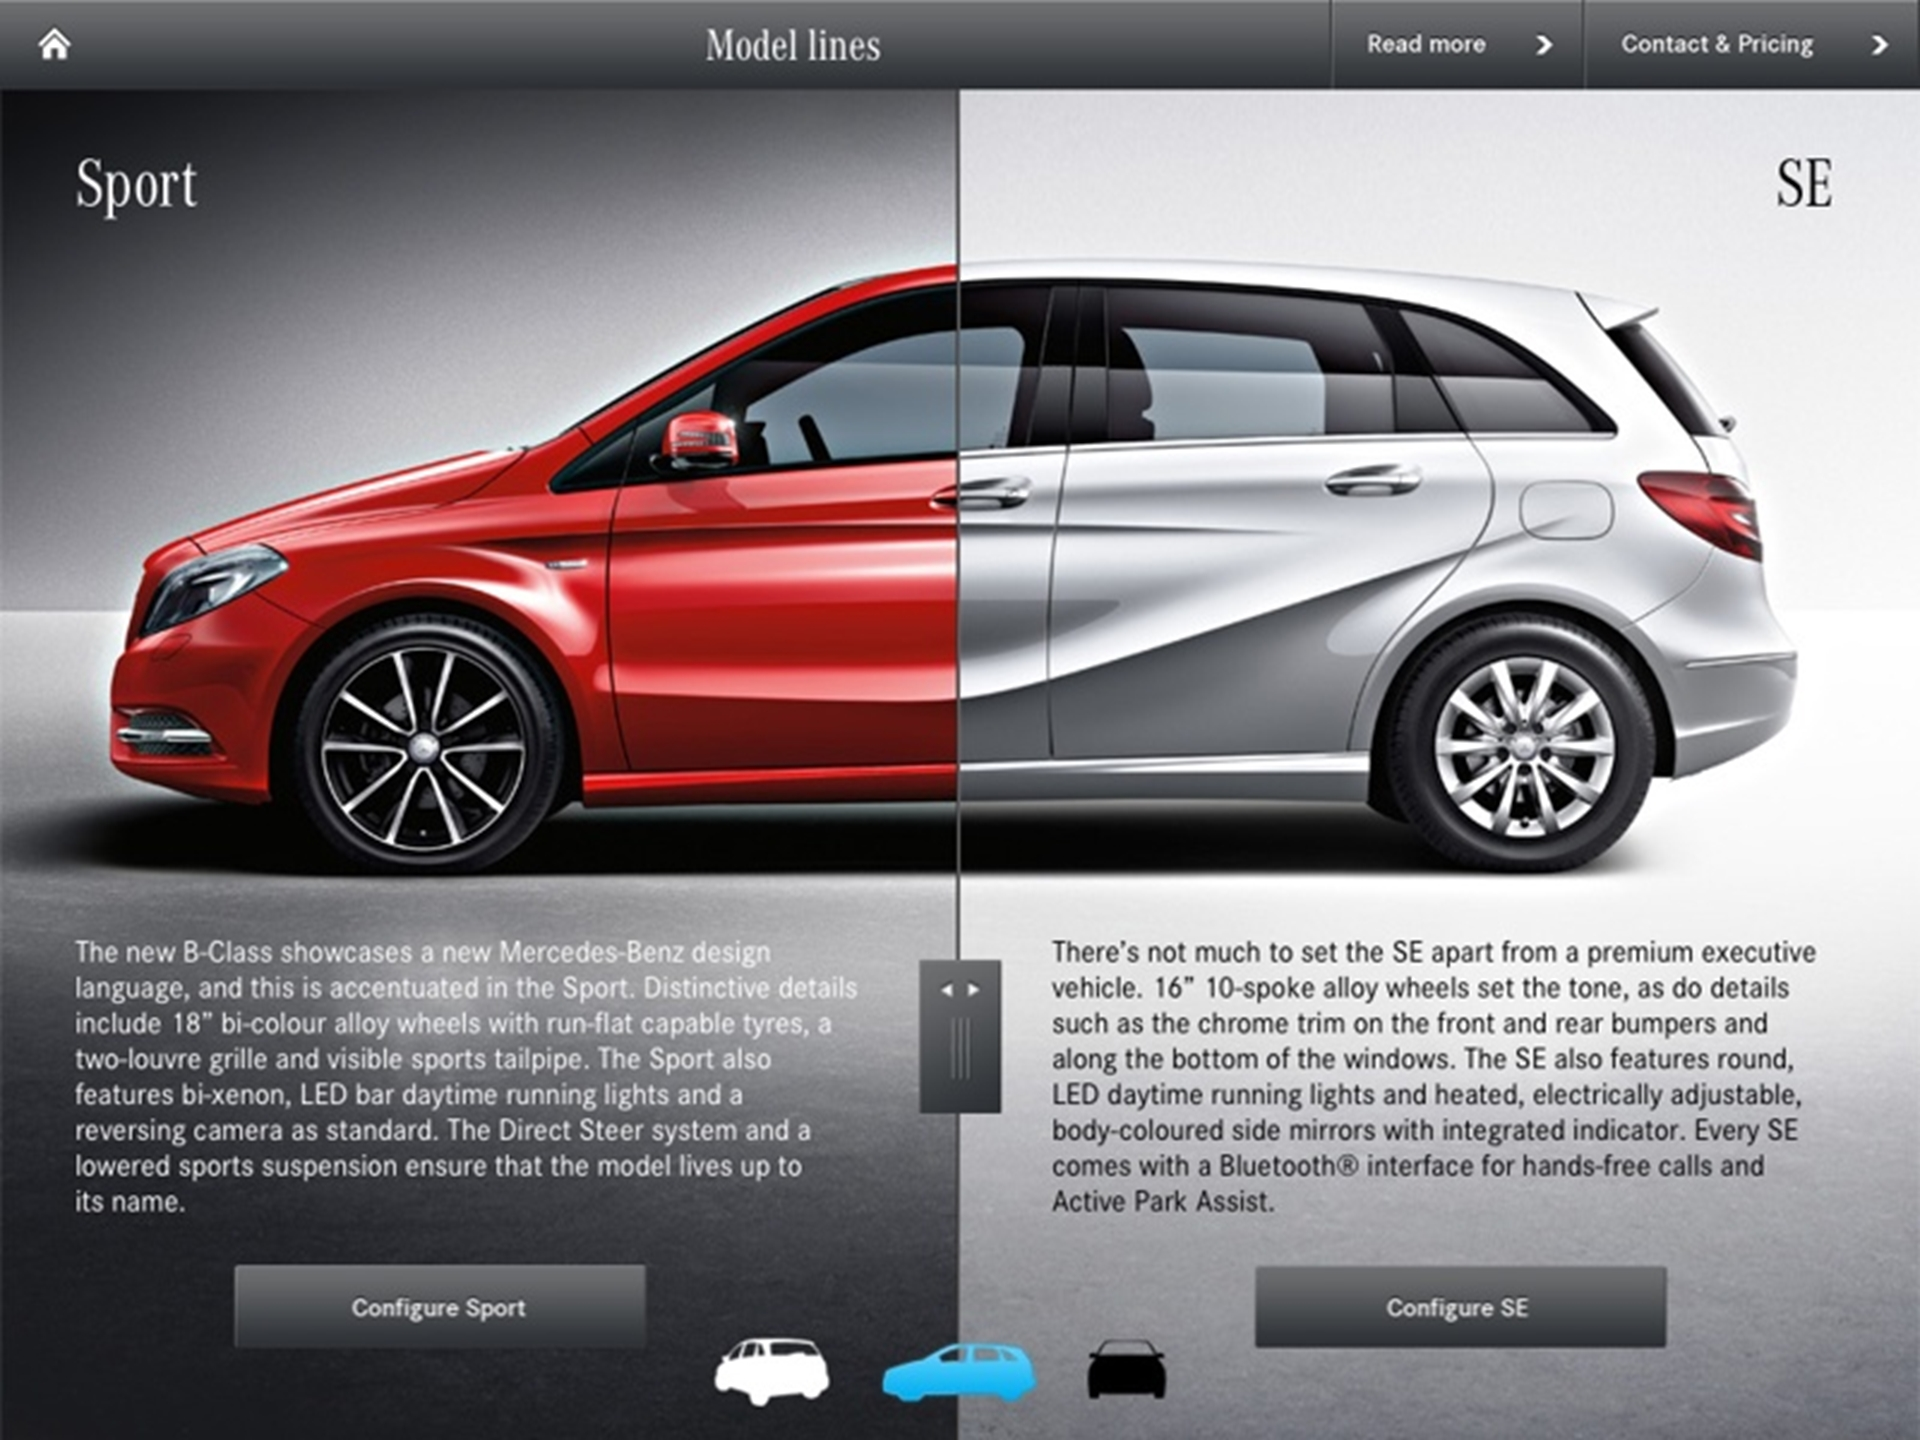 NEW B-CLASS IS BROUGHT TO LIFE WITH AUGMENTED REALITY iPAD APP